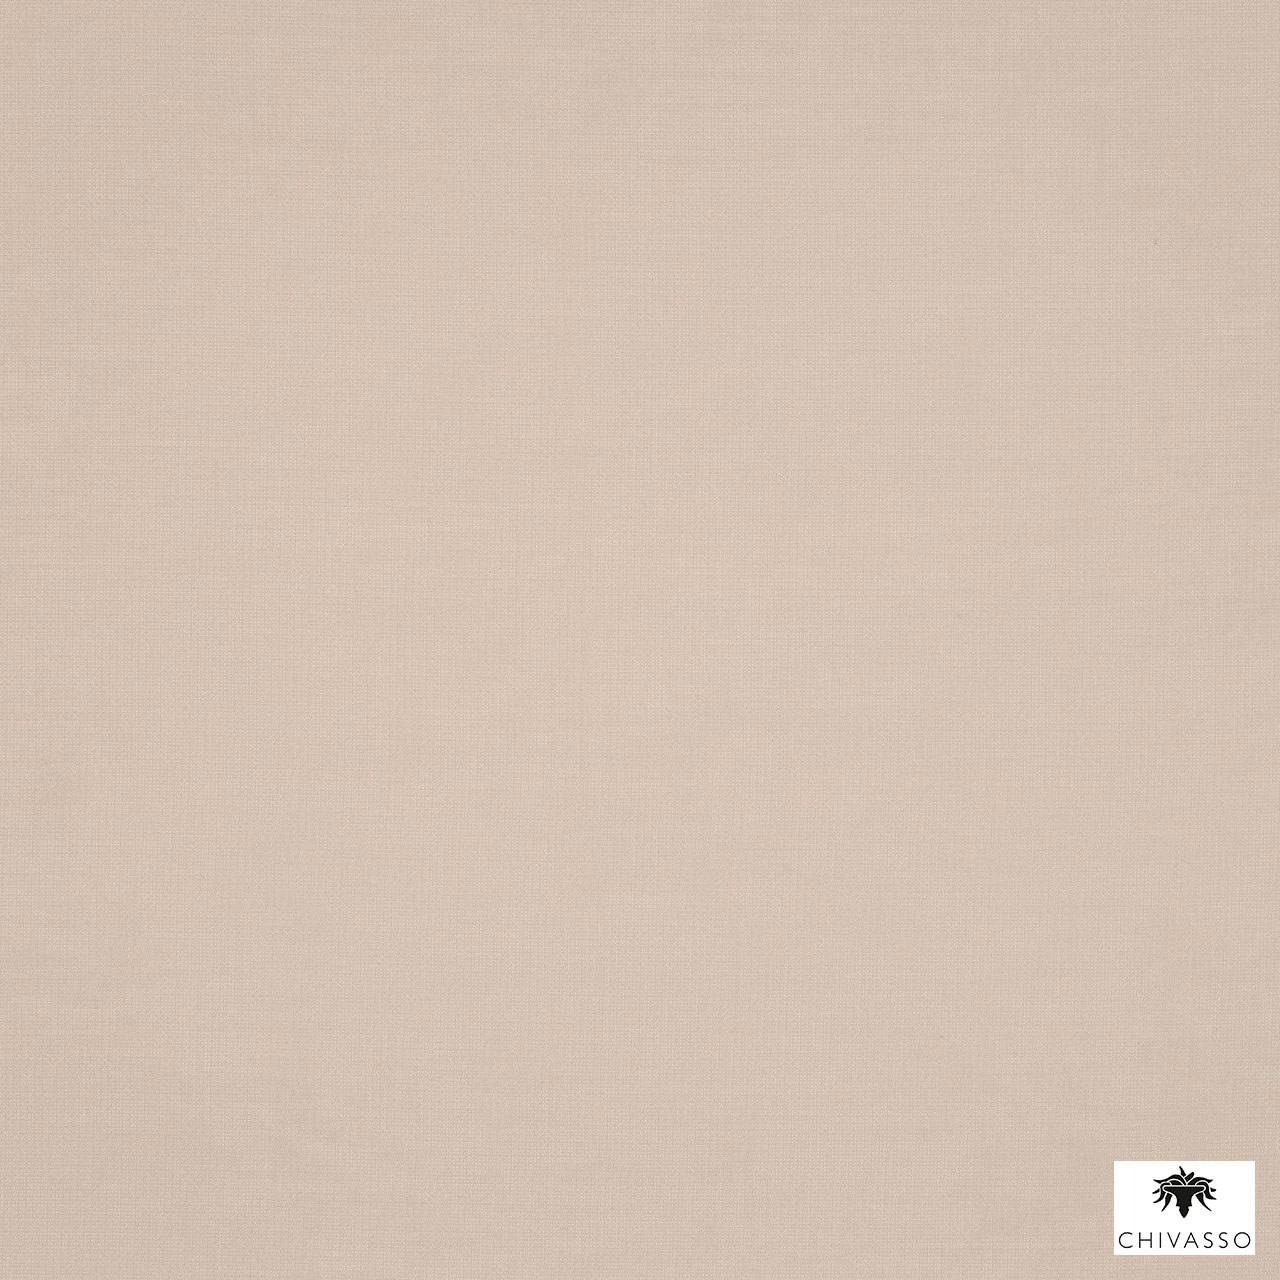 Chivasso - Lush - Ch2818 - 071  | Curtain Fabric - Beige, Plain, Synthetic, Domestic Use, Wide Width